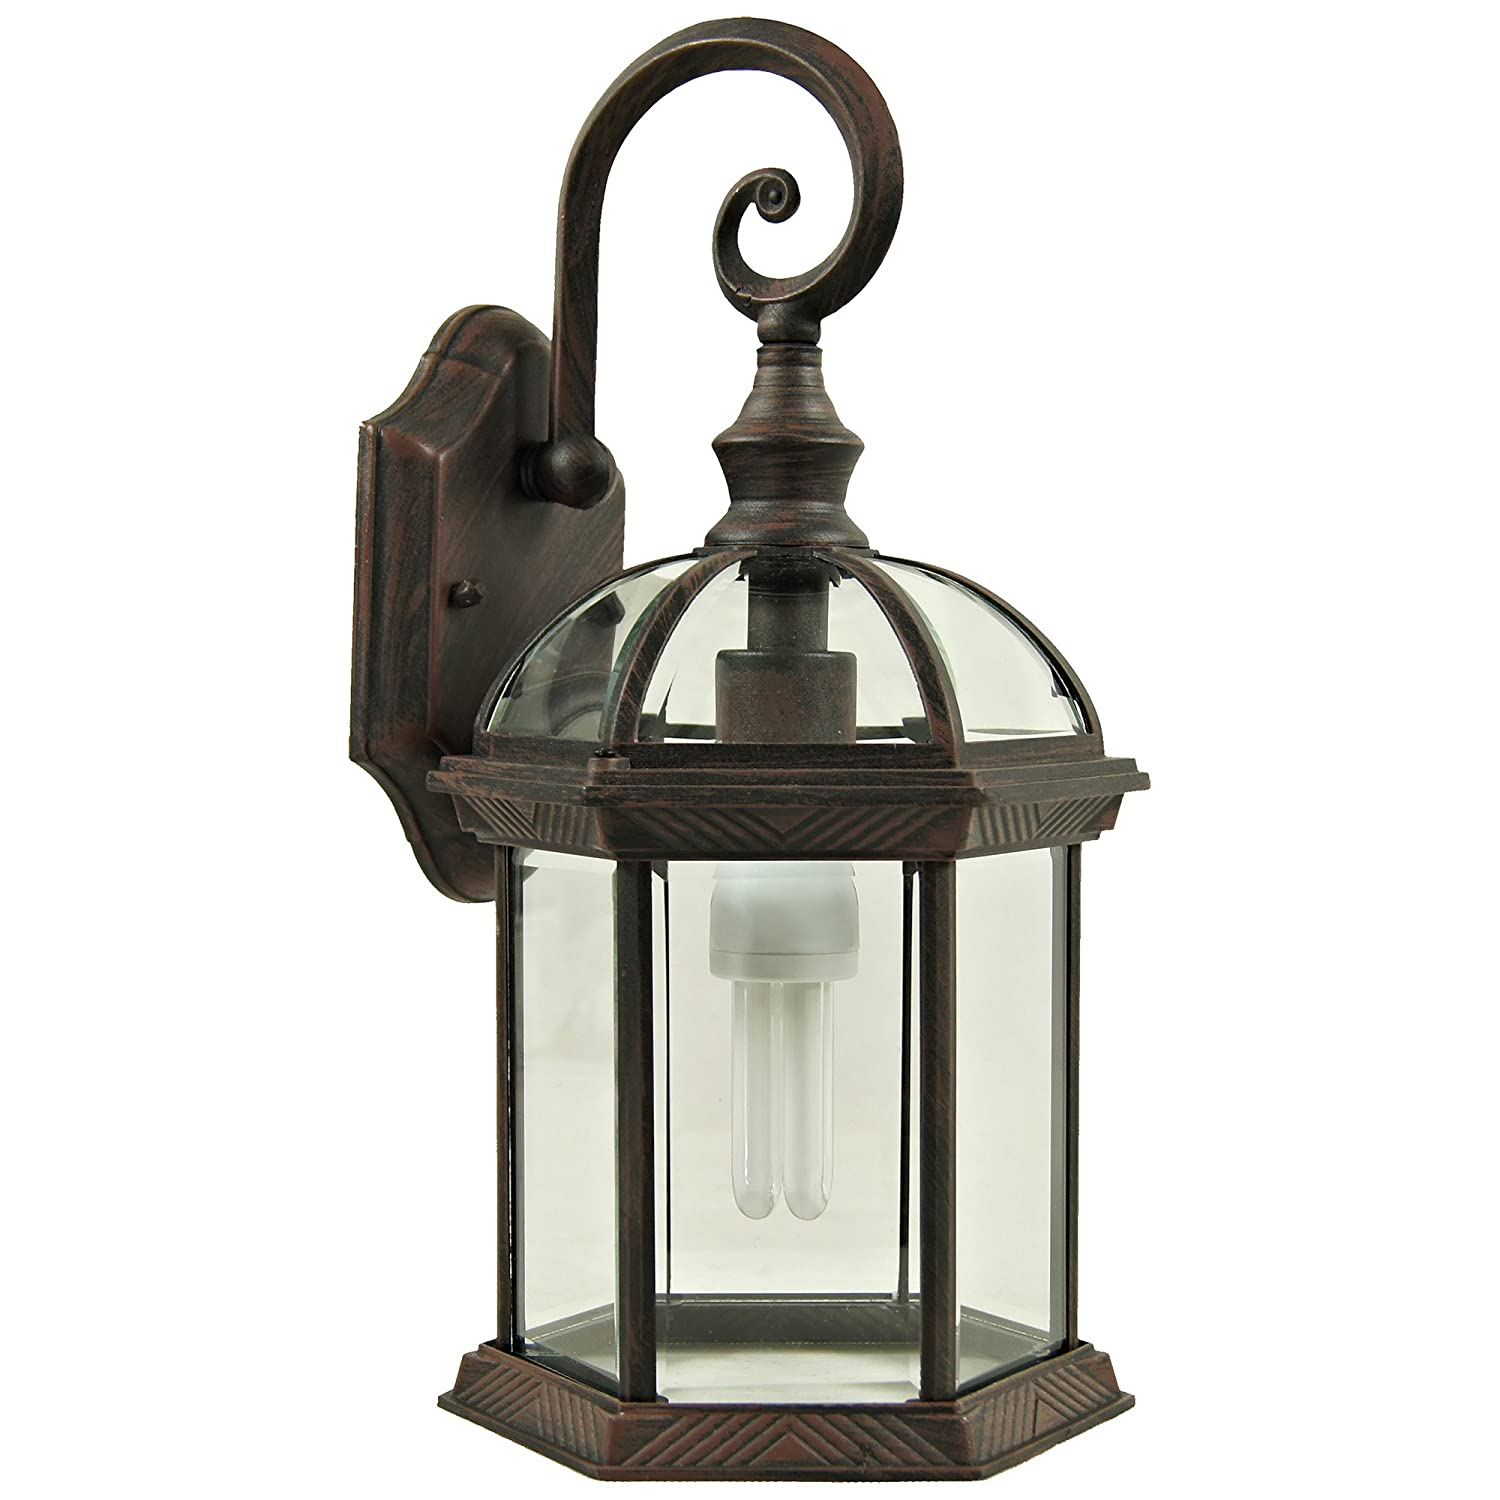 Yosemite Home Décor 5271VB Anita Collection One Light Incandescent ...